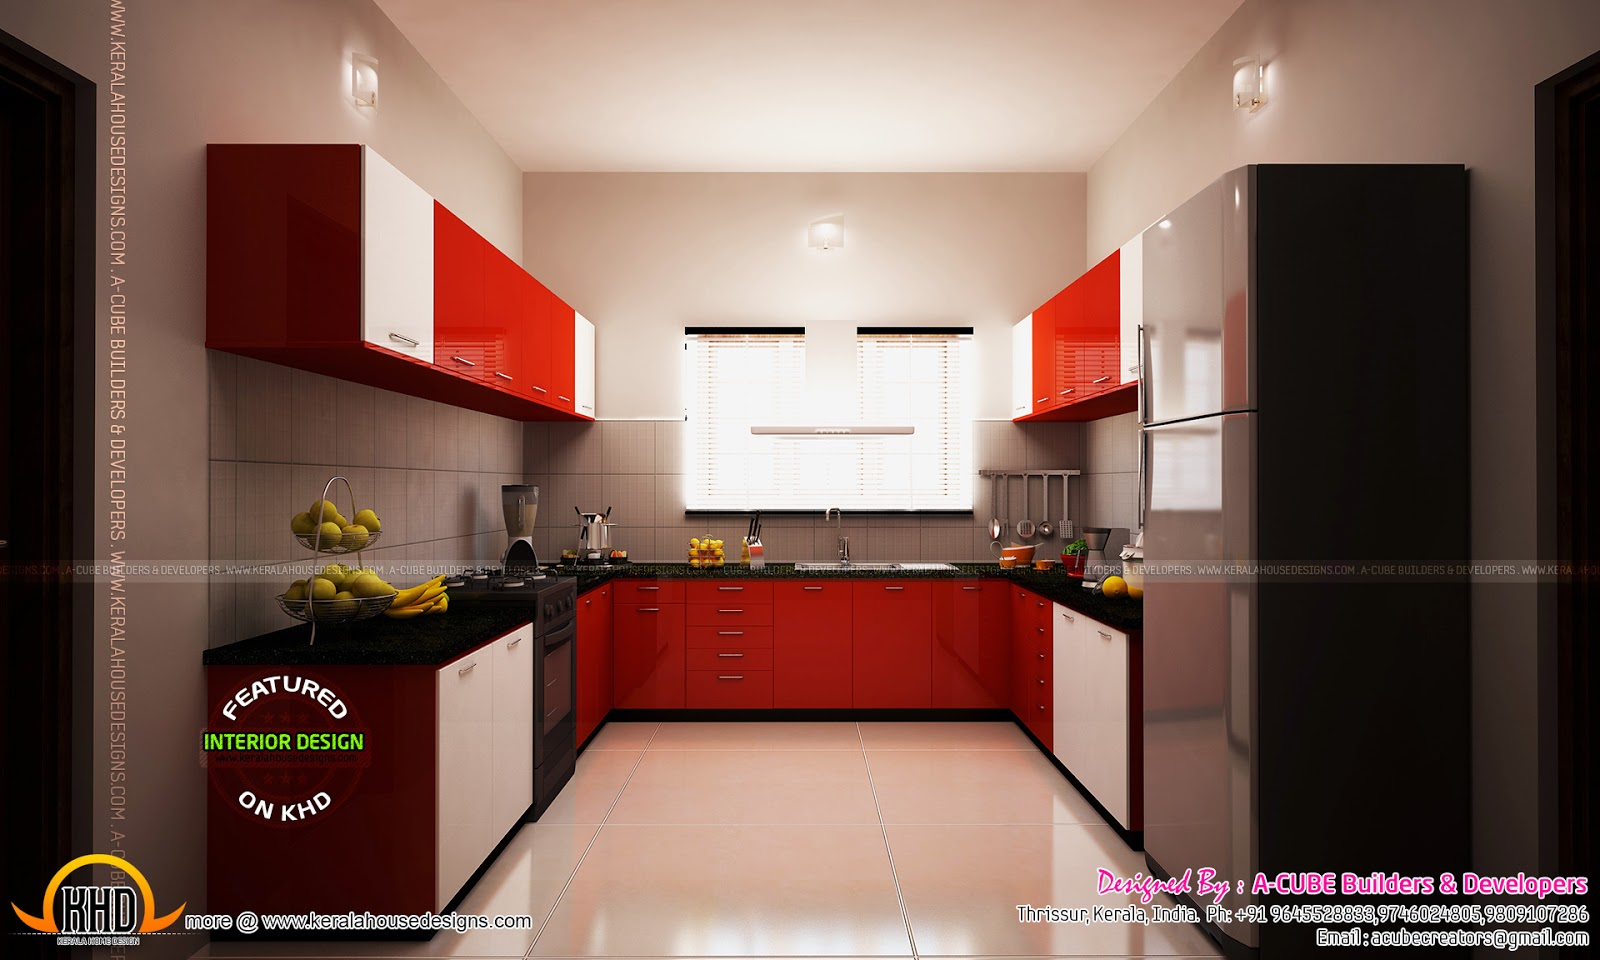 Modern kerala interior designs kerala home design and for Kerala homes interior designs